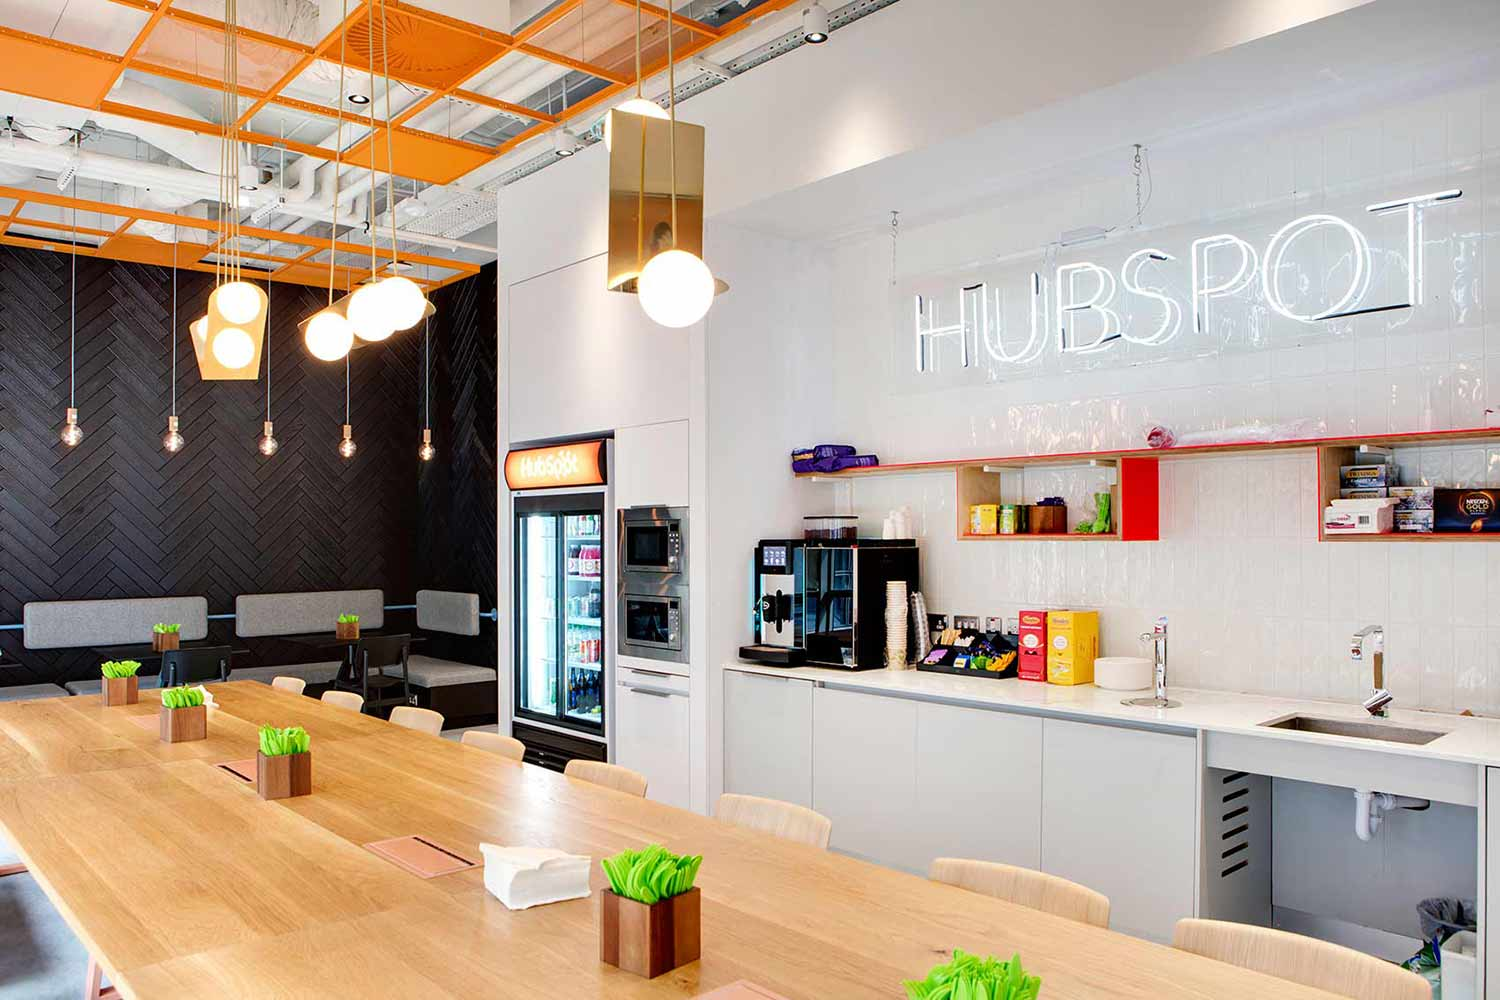 Cool office kitchen interior design and neon sign